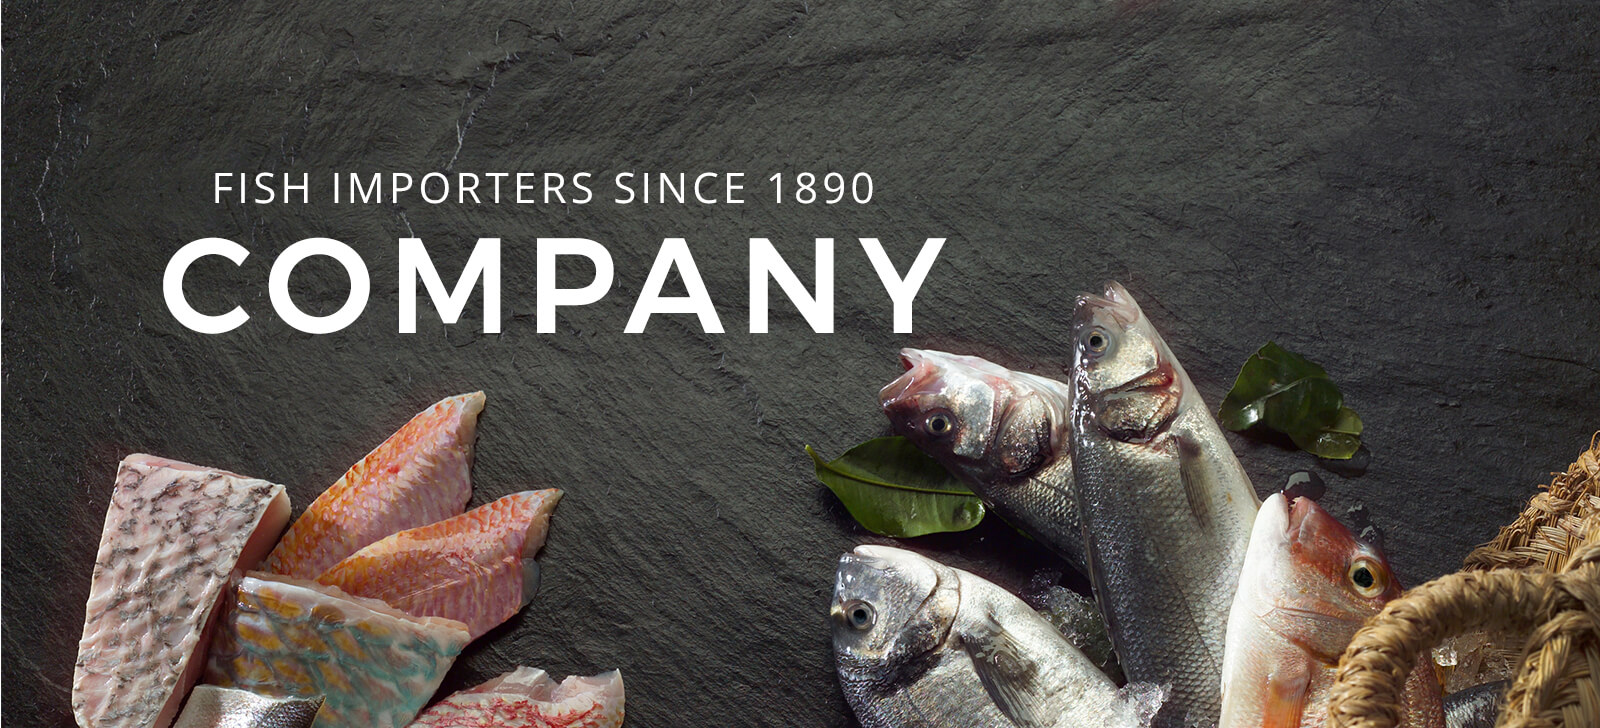 Fish Importers since 1890 - Company